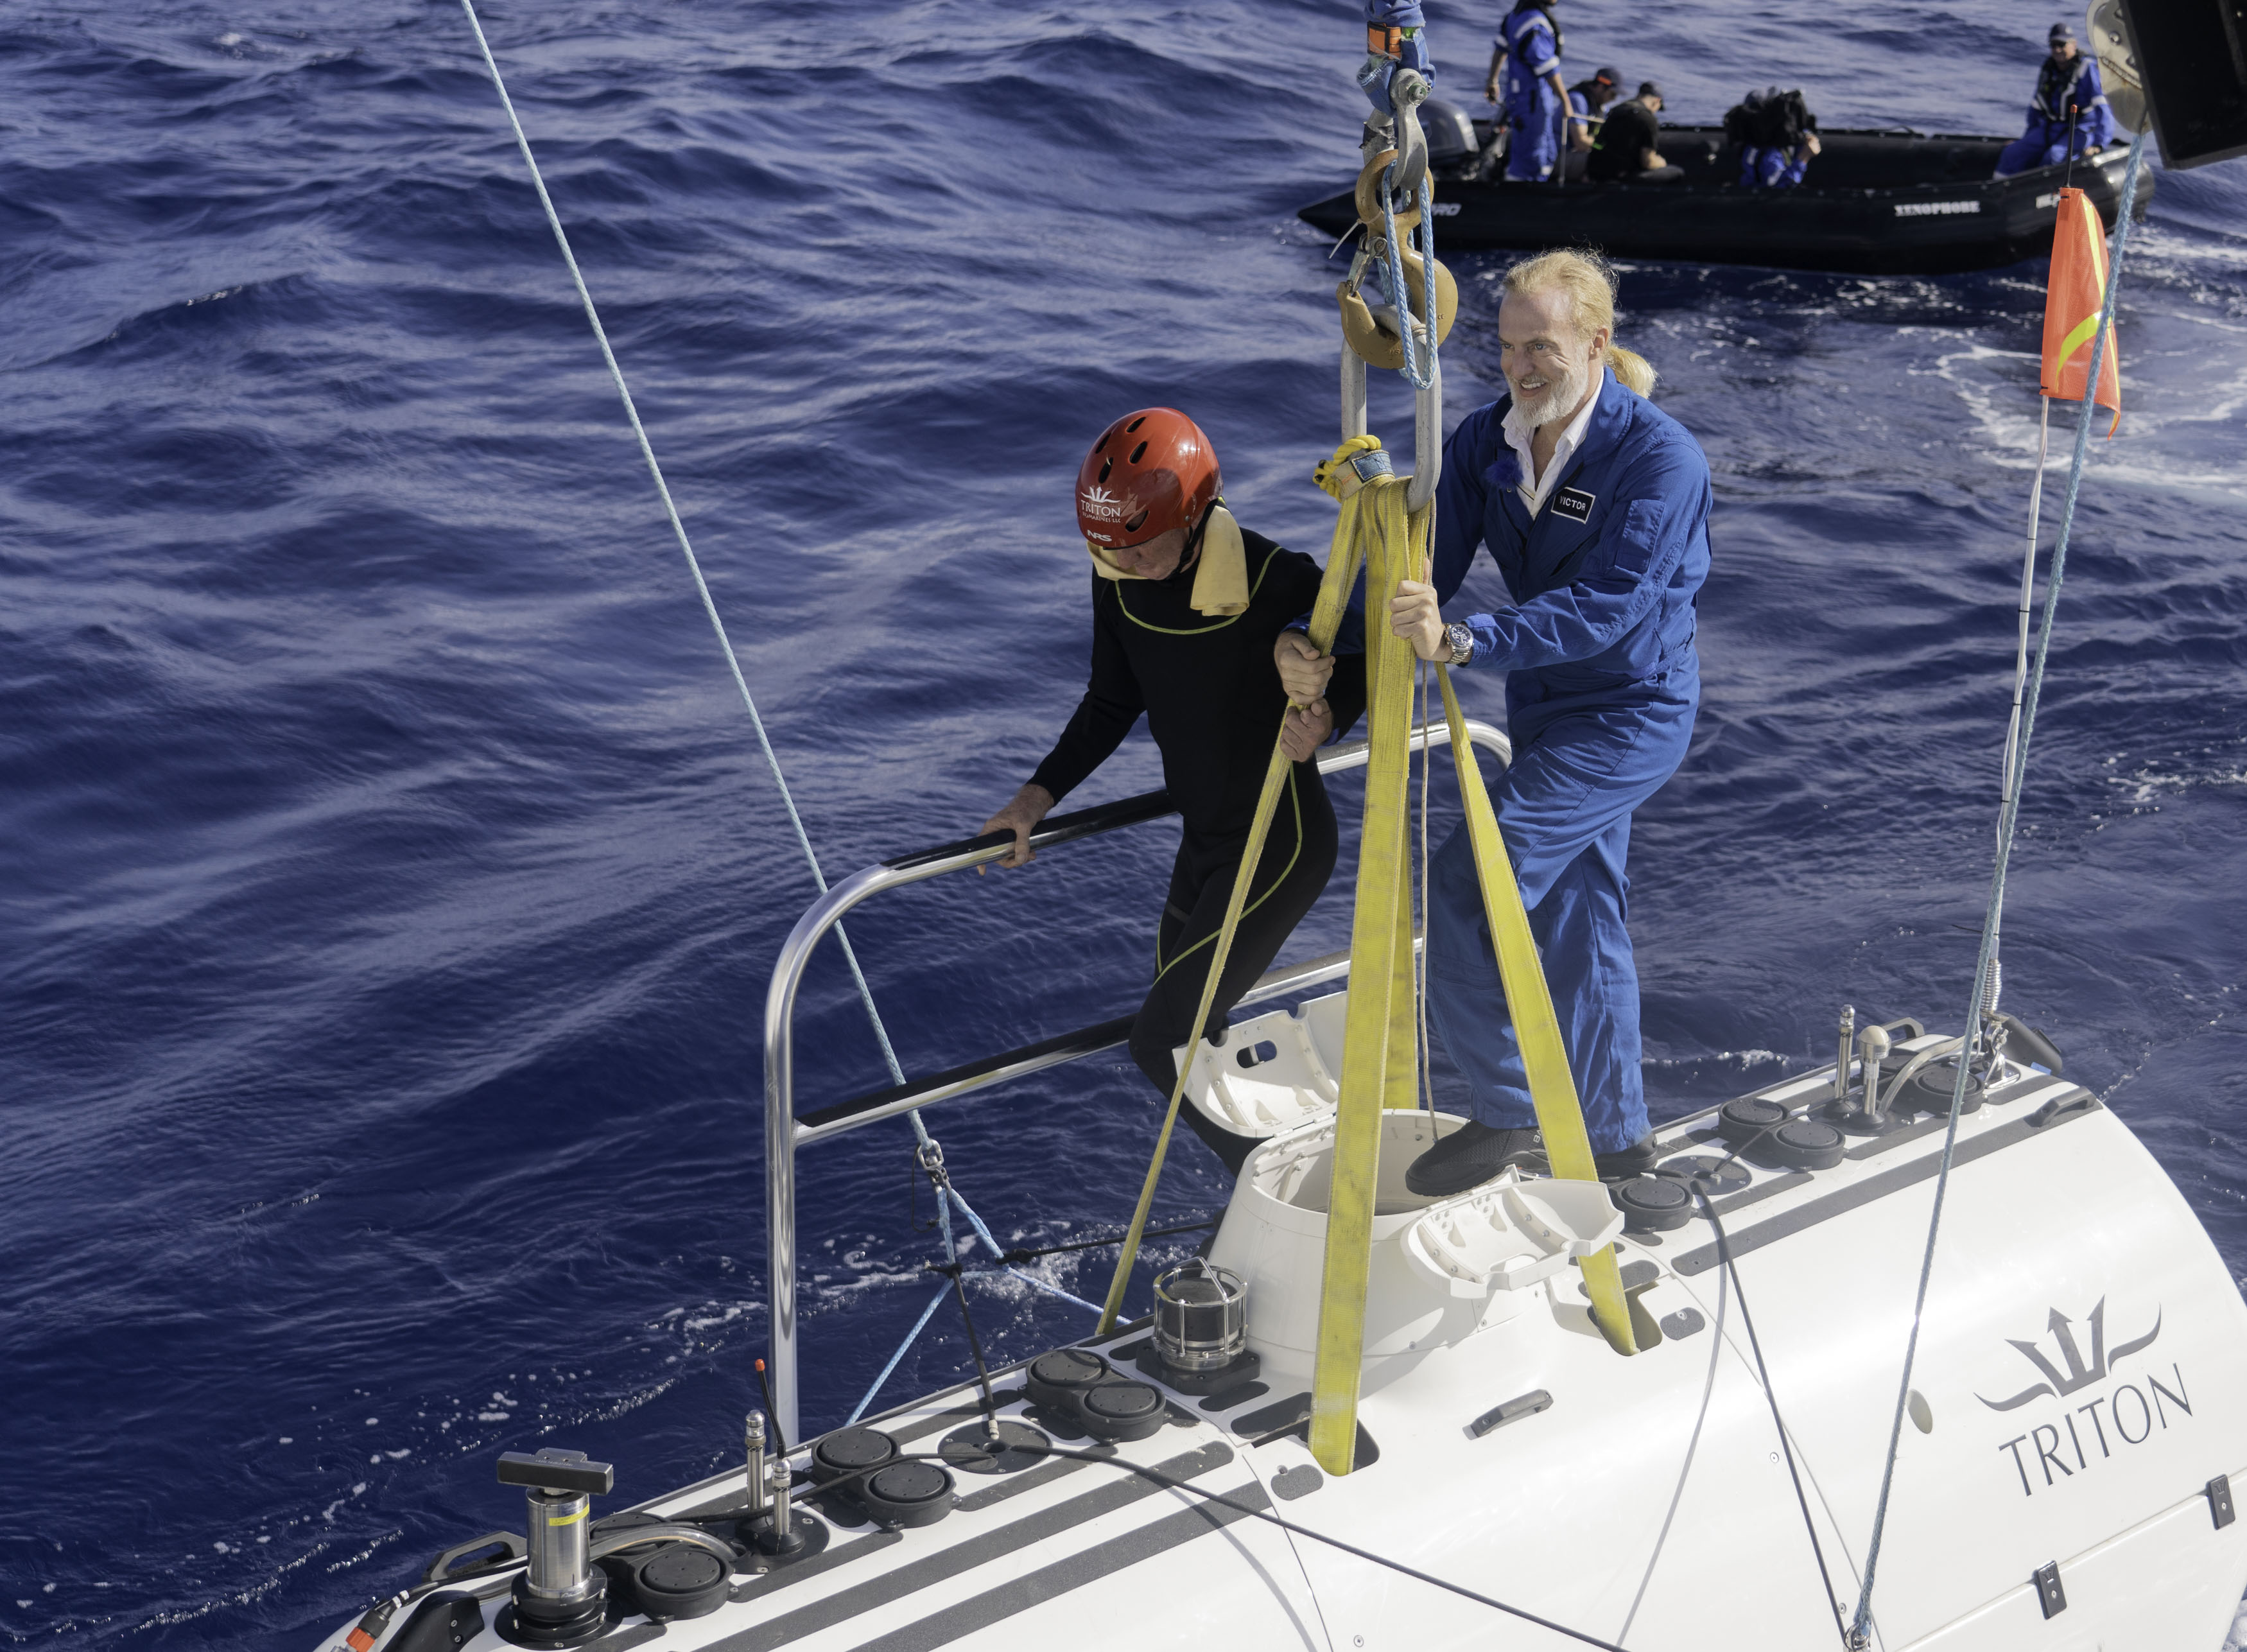 An inside look at the first solo trip to the deepest point of the Atlantic